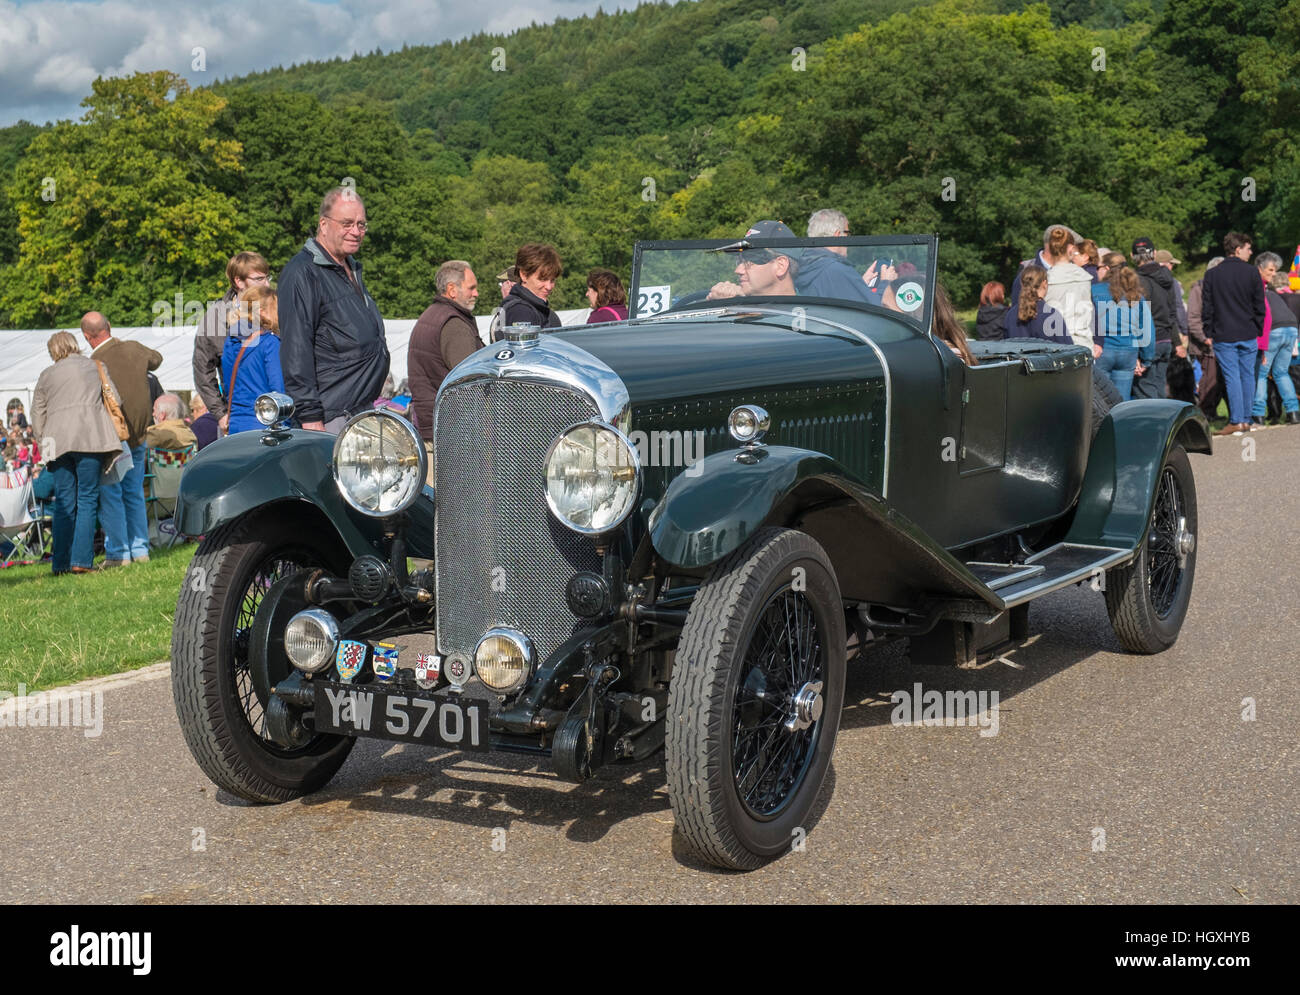 1928 Classic 2 Seater Open Top Bentley Car Being Admired By Visitors At A  UK Country